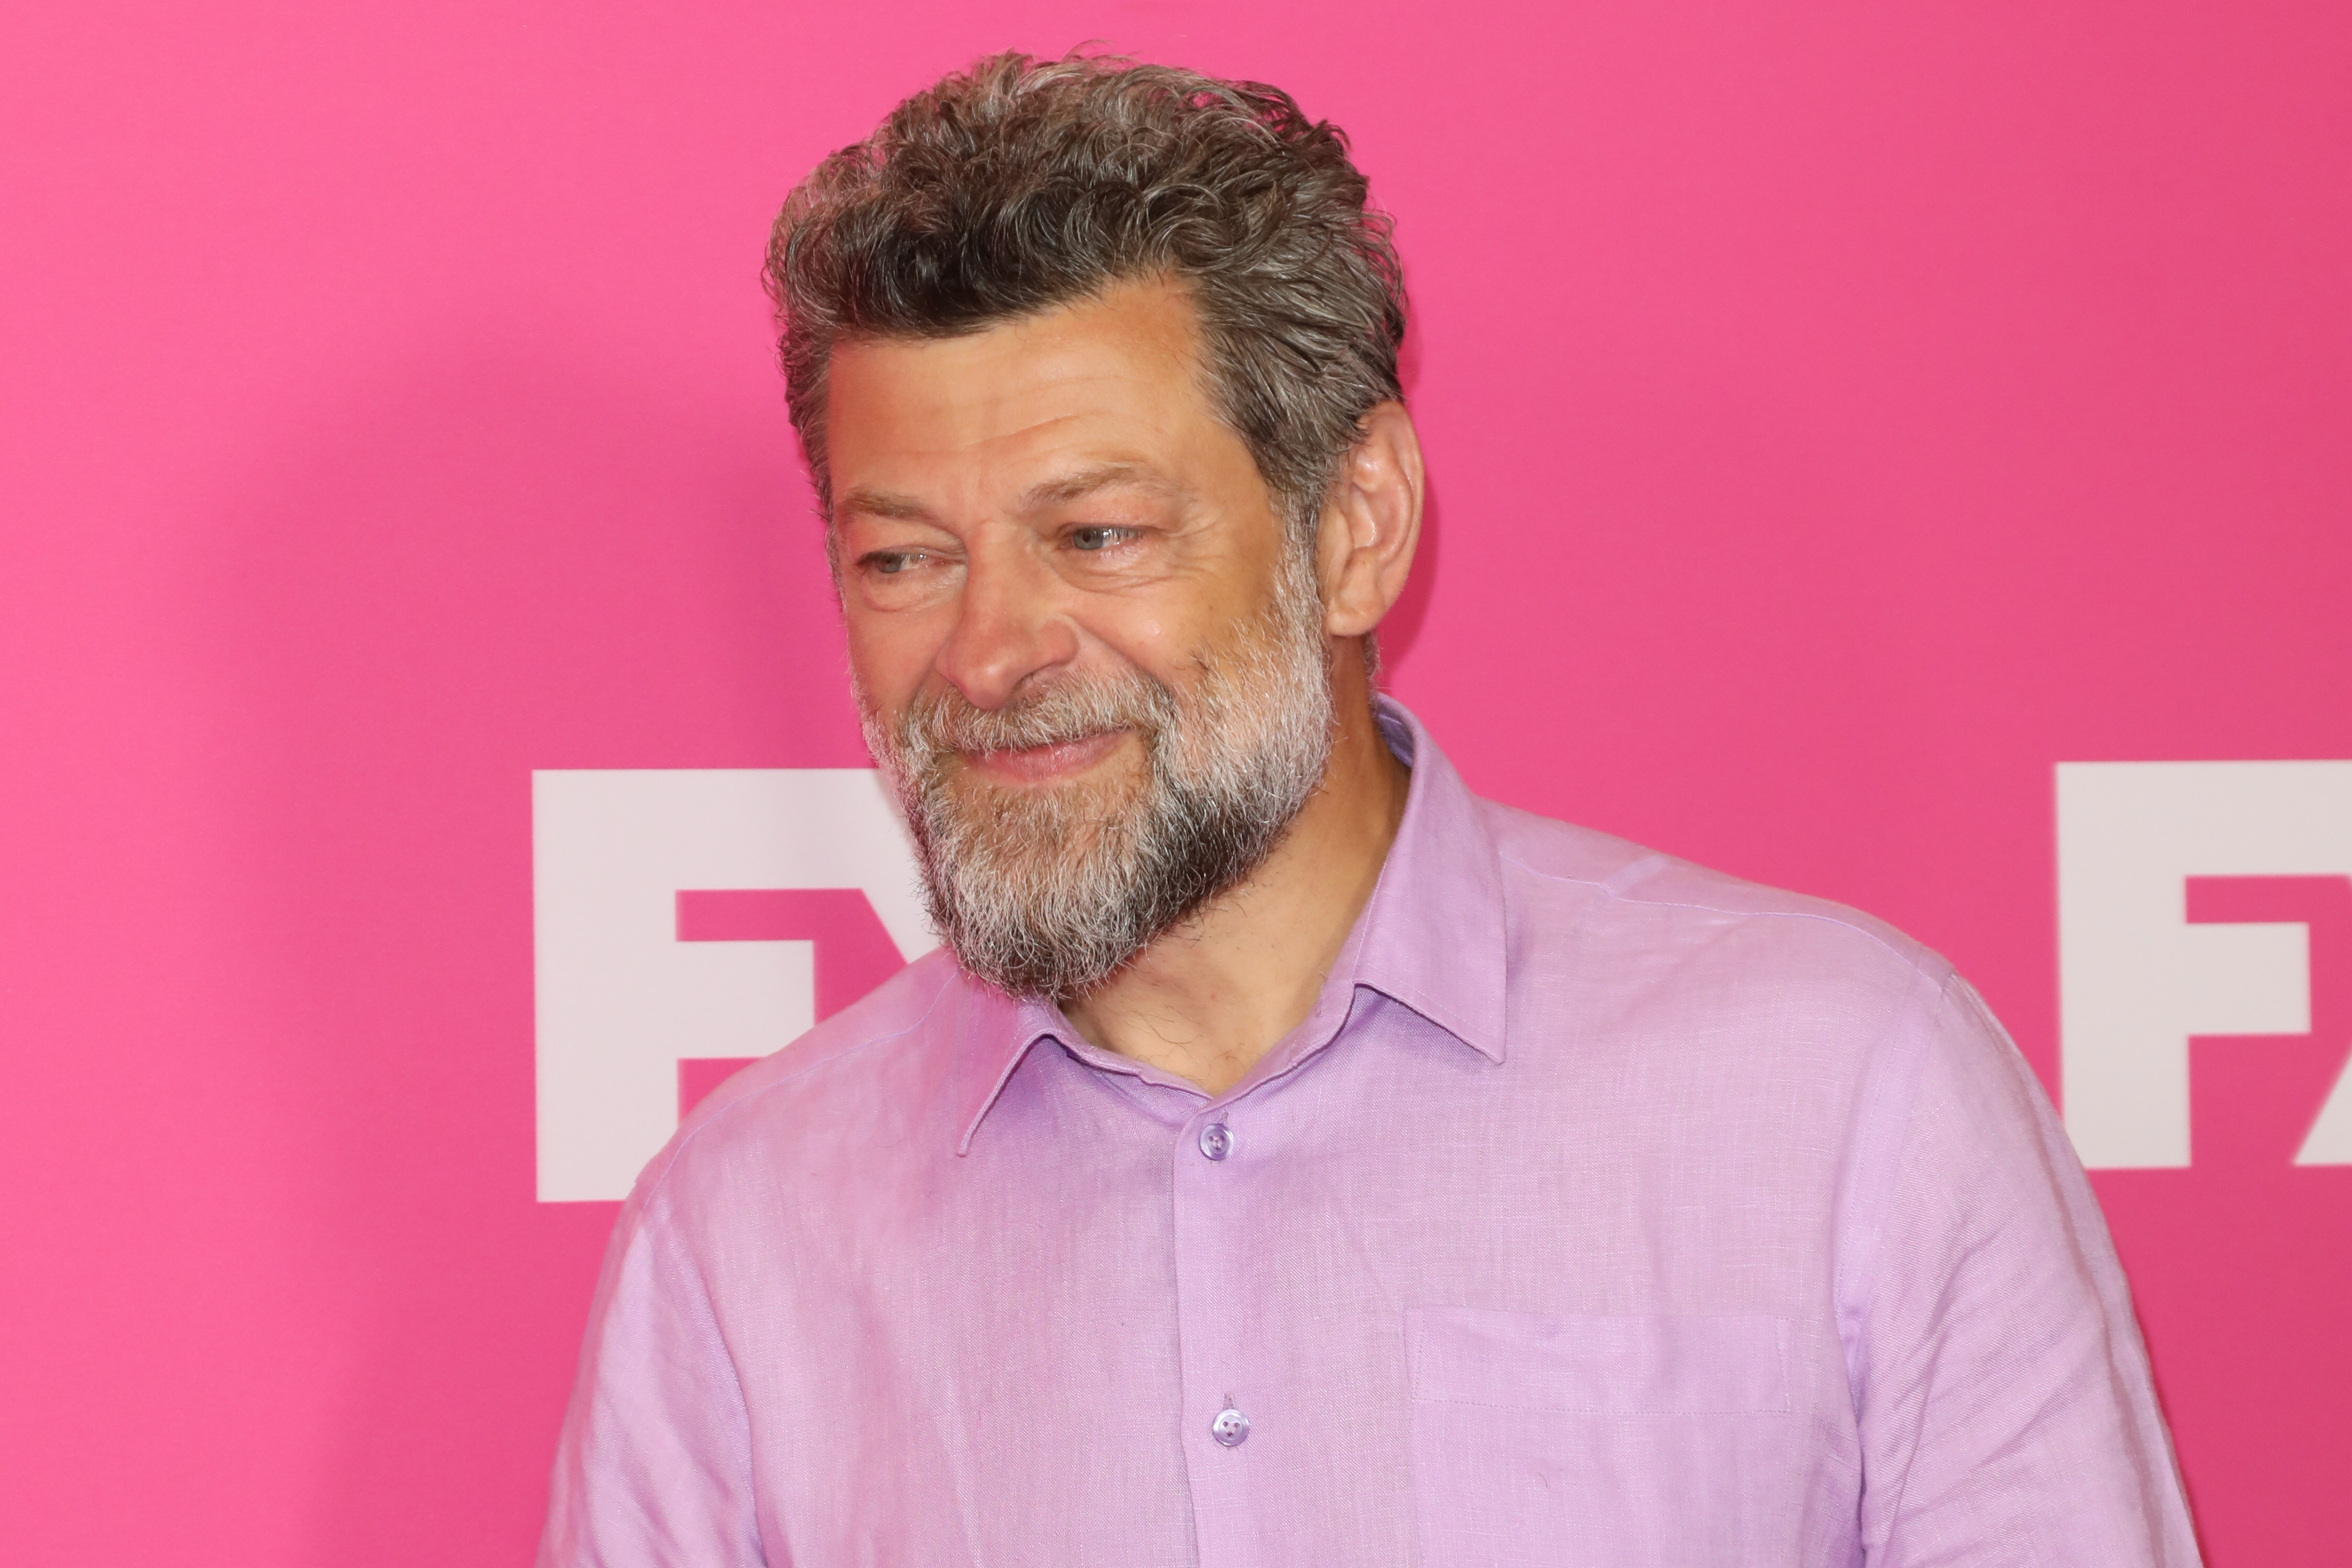 BEVERLY HILLS, CALIFORNIA - AUGUST 06:  Andy Serkis attends the FX Networks TCA's Starwalk Red Carpet at The Beverly Hilton Hotel on August 06, 2019 in Beverly Hills, California. (Photo by Paul Archuleta/FilmMagic)